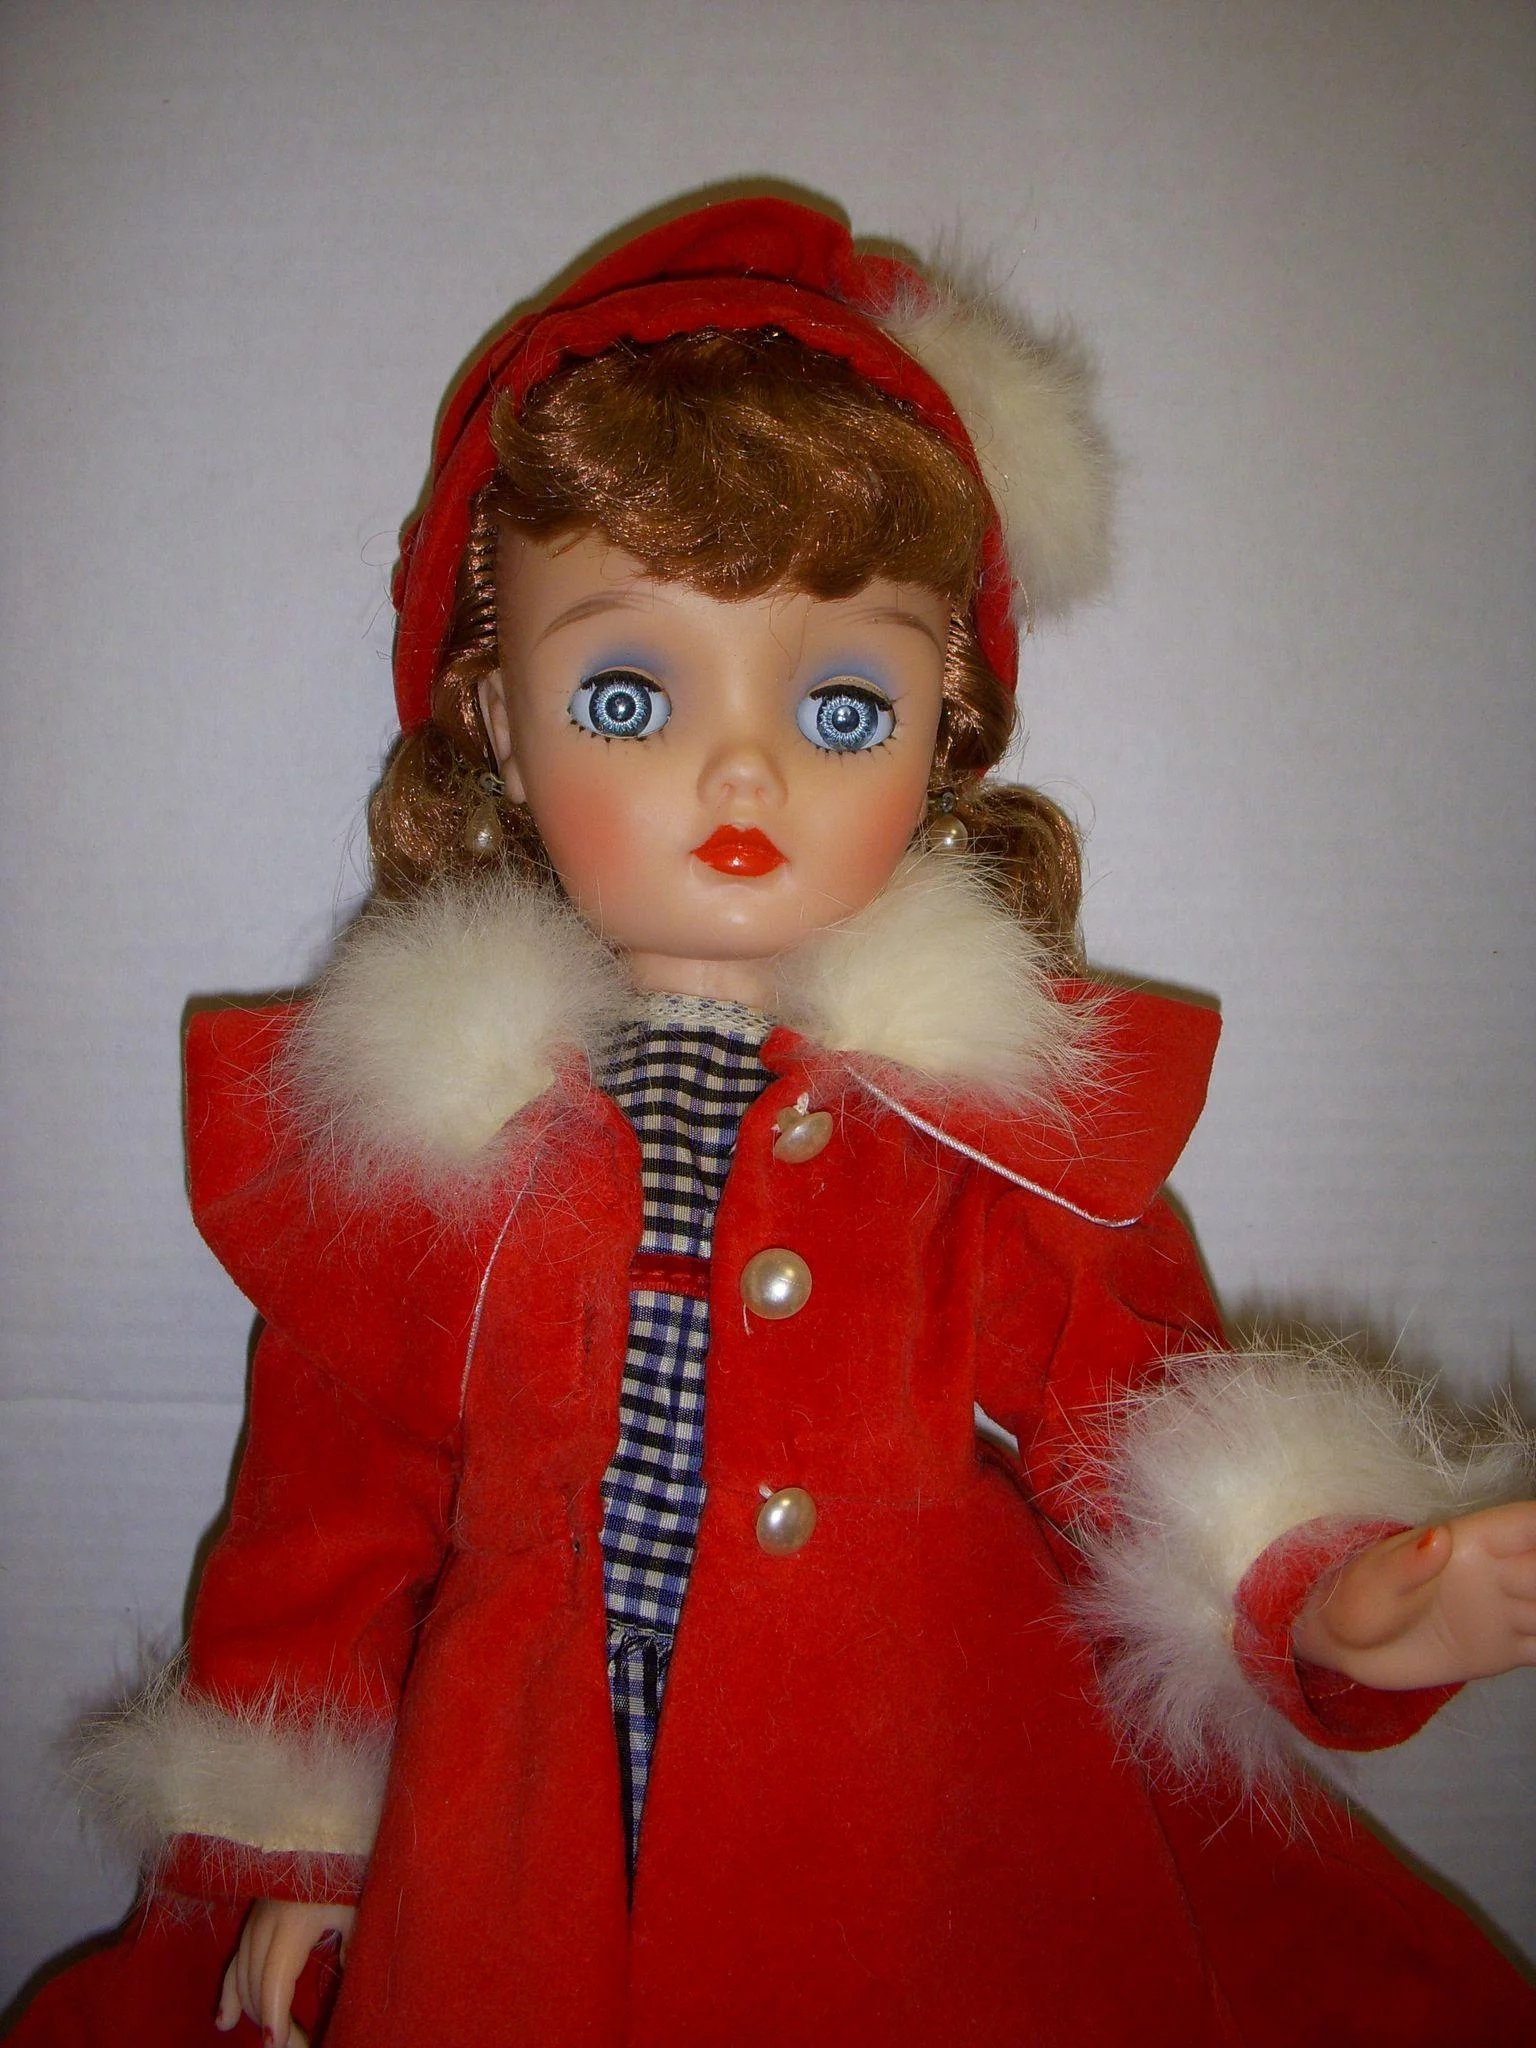 Vintage 1950s 19 Quot Eegee Fashion Doll All Original Kathy